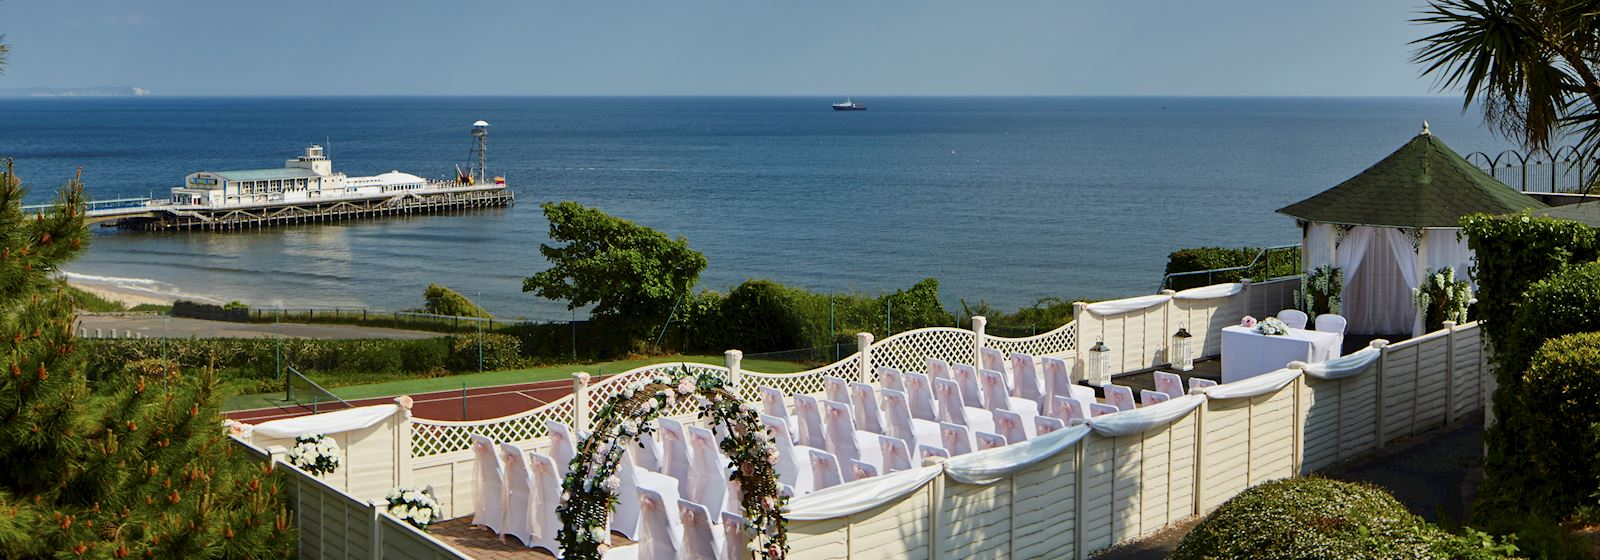 Wedding Party Venues Bournemouth